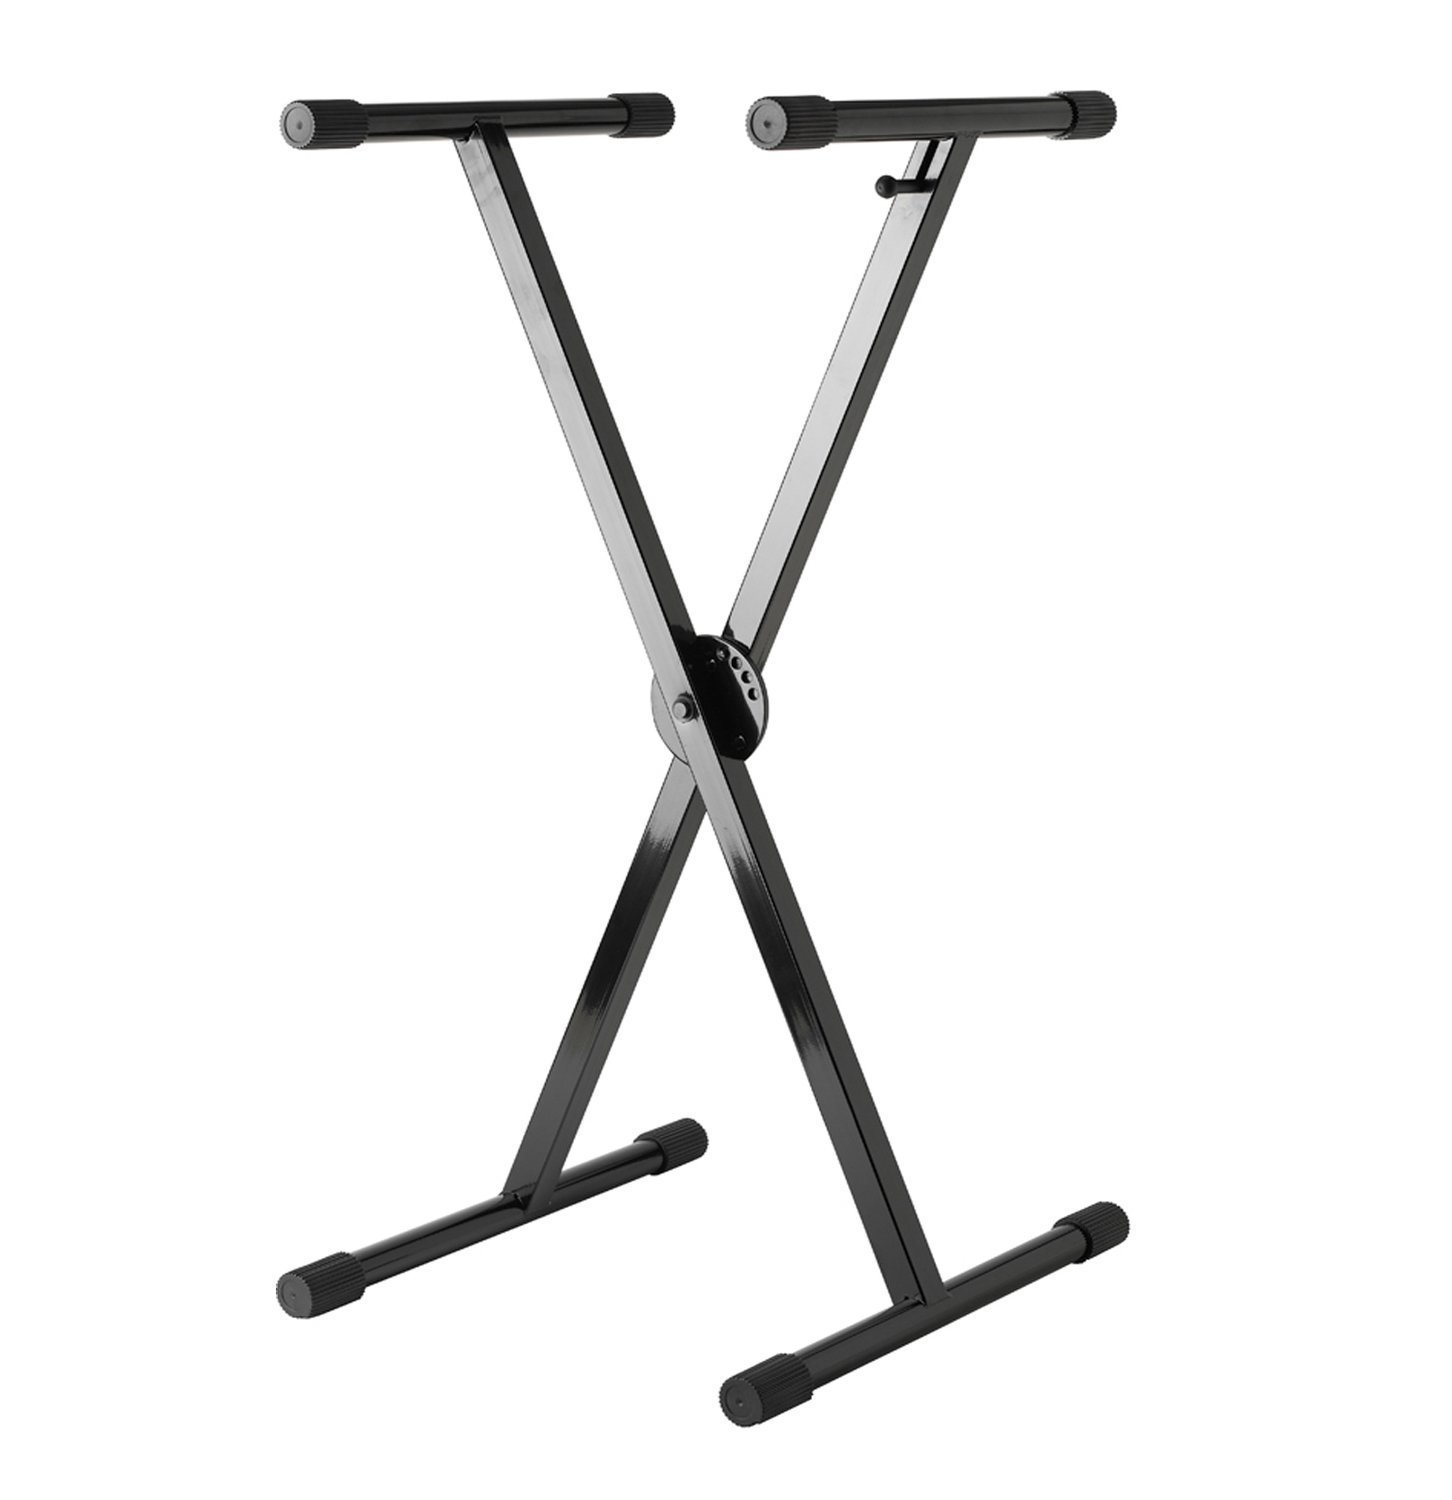 Trade Stands Olympia : Strukture single brace keyboard stand with trigger black